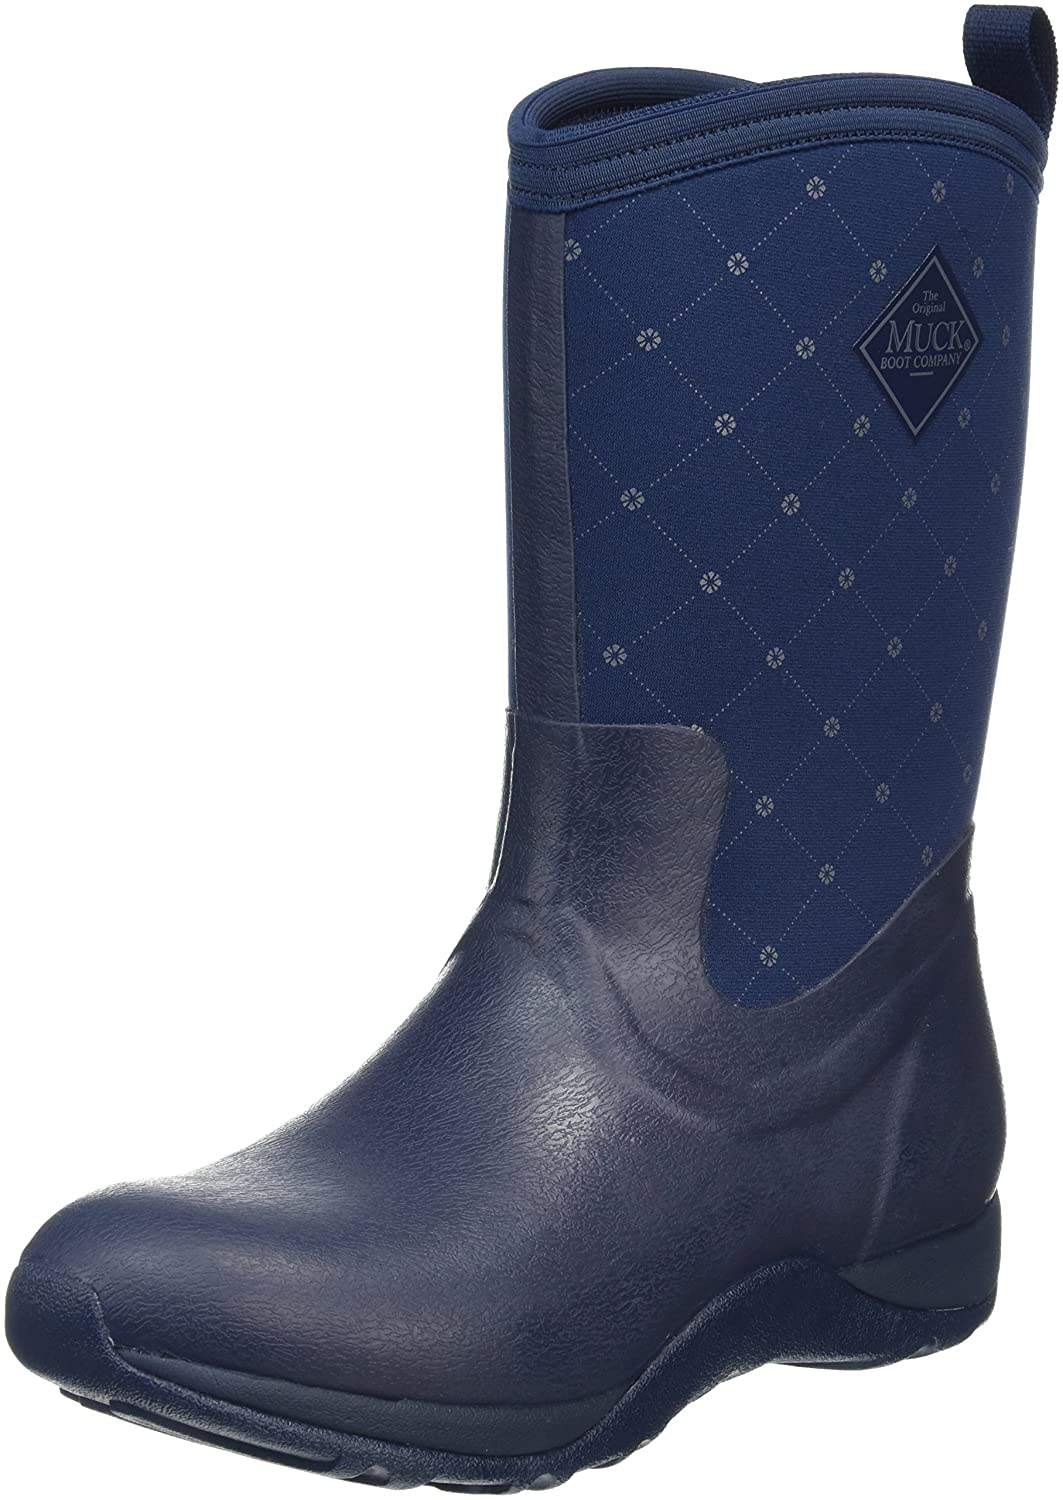 Muck Boot Women's Arctic Weekend Mid Snow B01J6MCAEQ 5 B(M) US|Navy Quilt